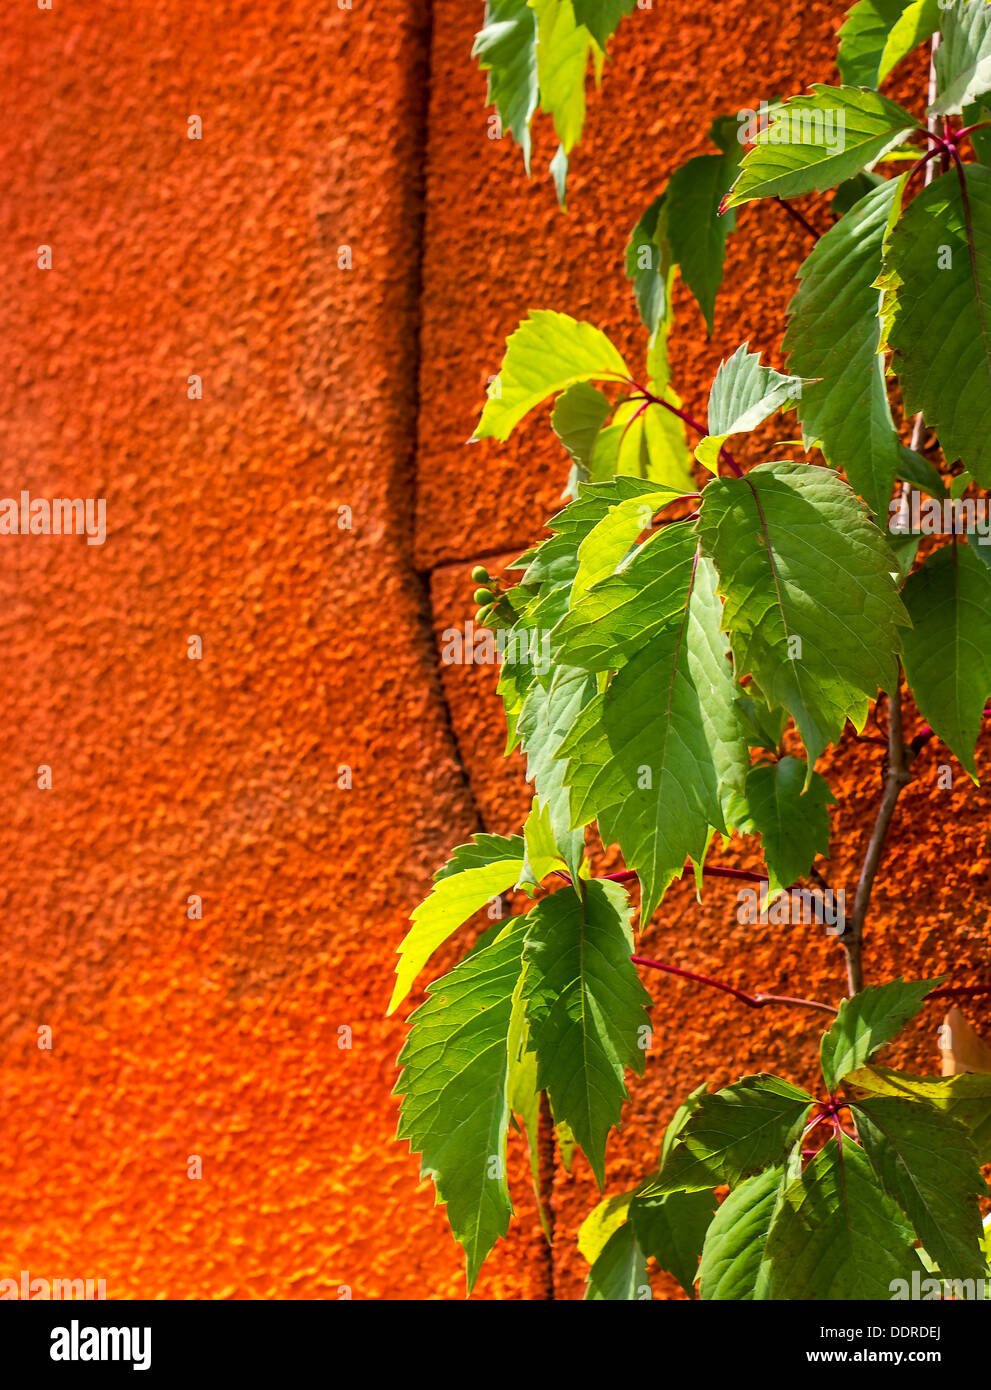 Transparent green leaves on an orange wall in the bright sun - Stock Image